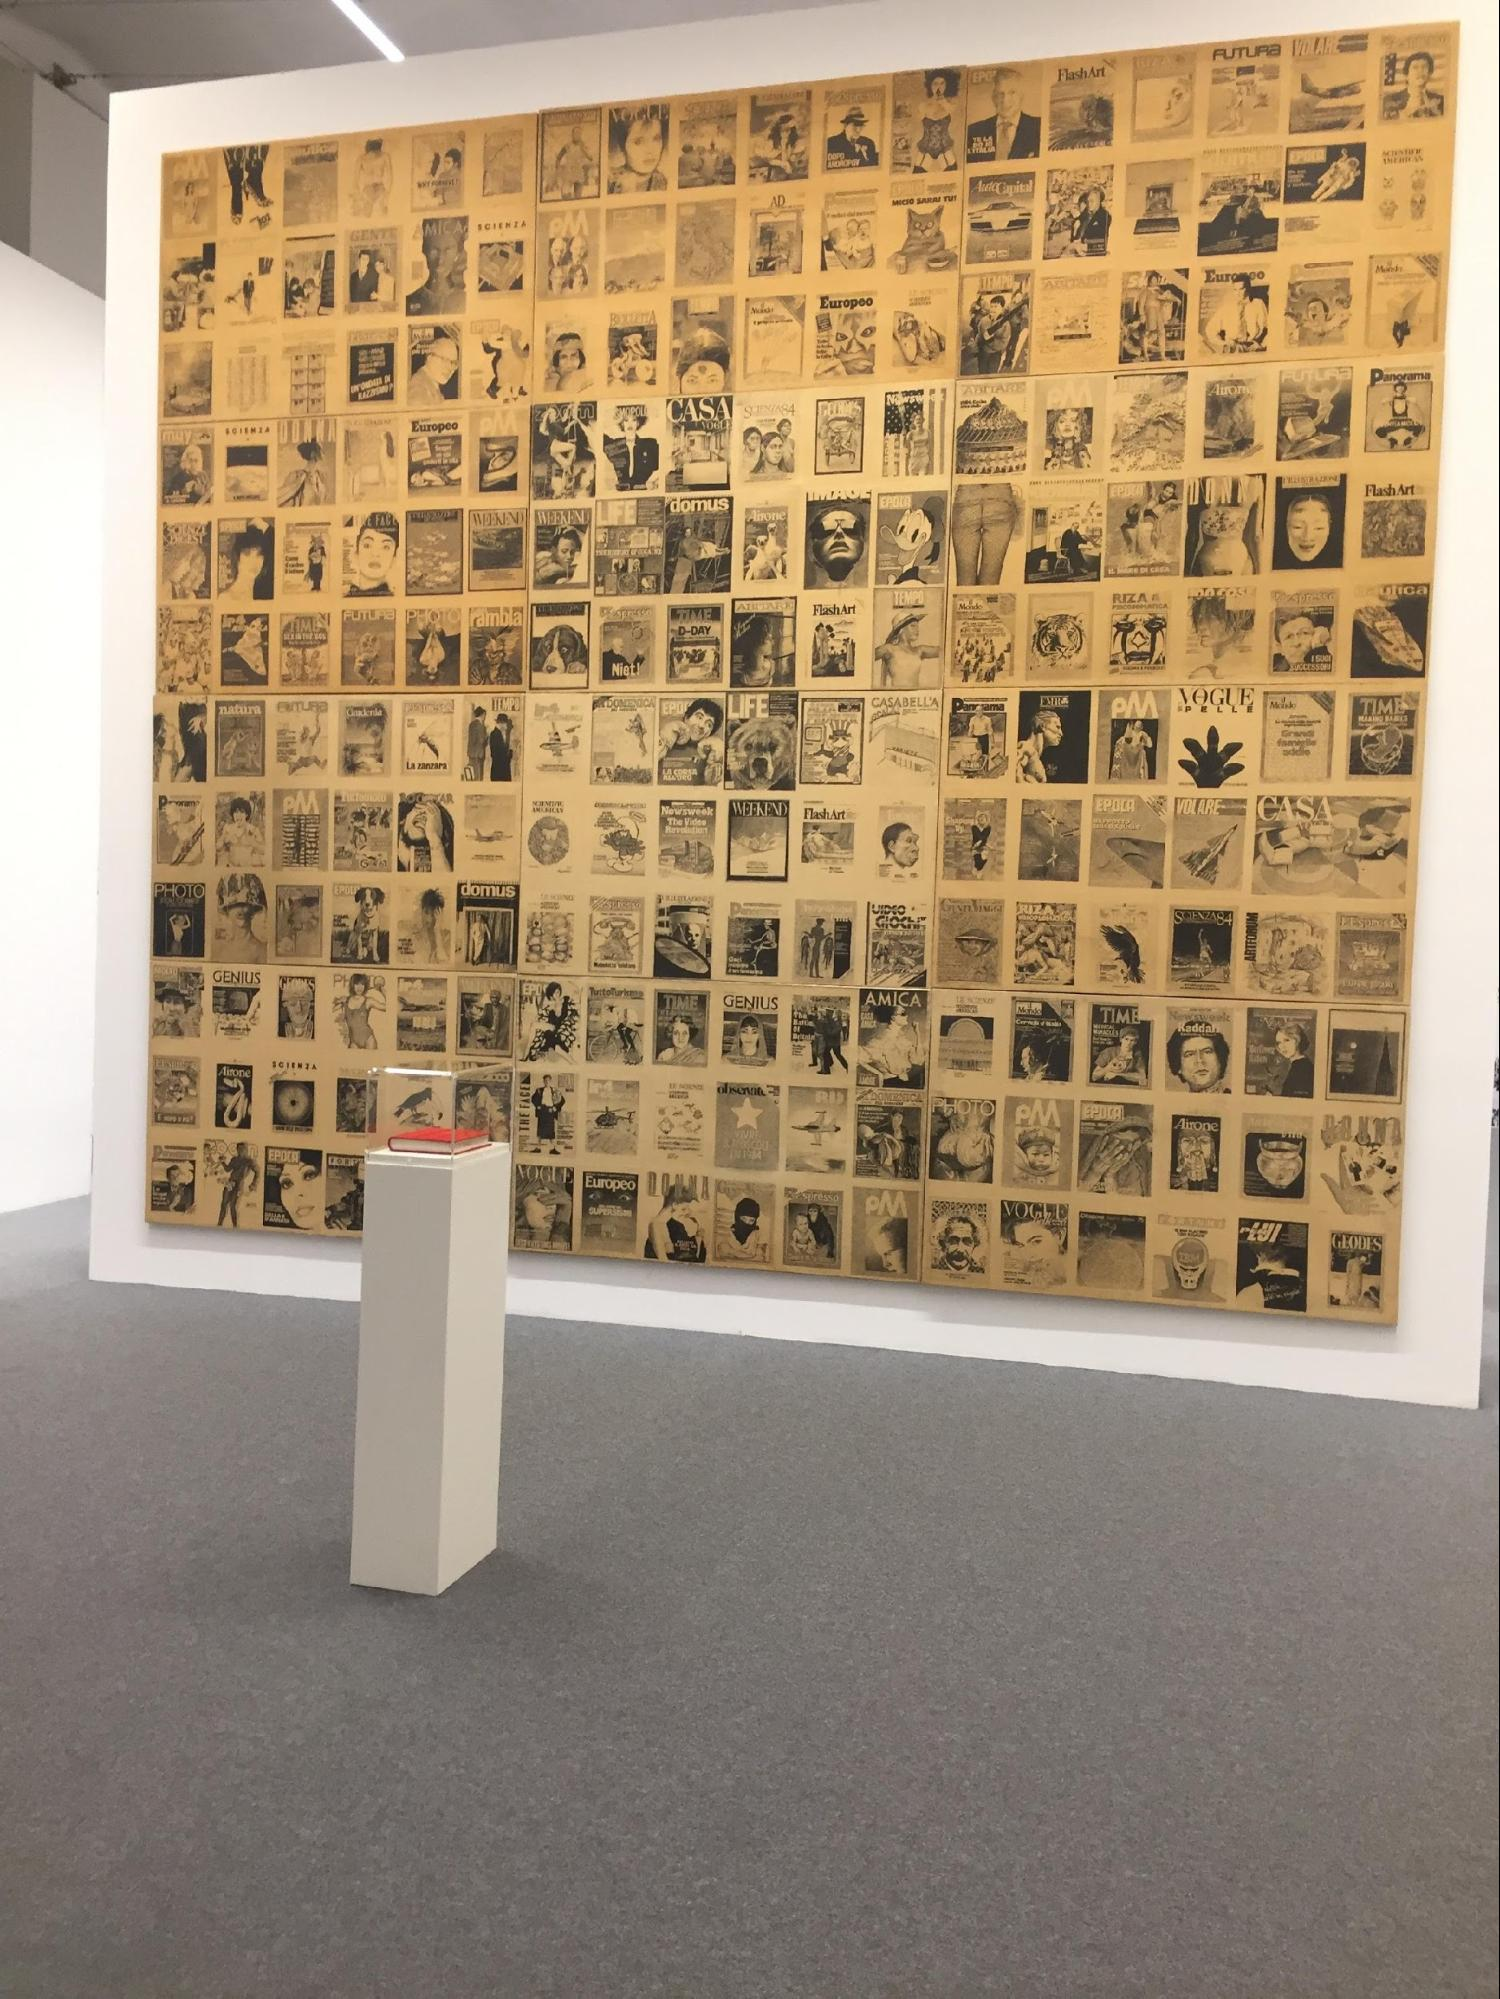 IN THE PHOTO: BOETTI'S COVERS (1984) (BIENNALE DI VENEZIA 2017)  PHOTO CREDIT: OLIVA SARTOGO